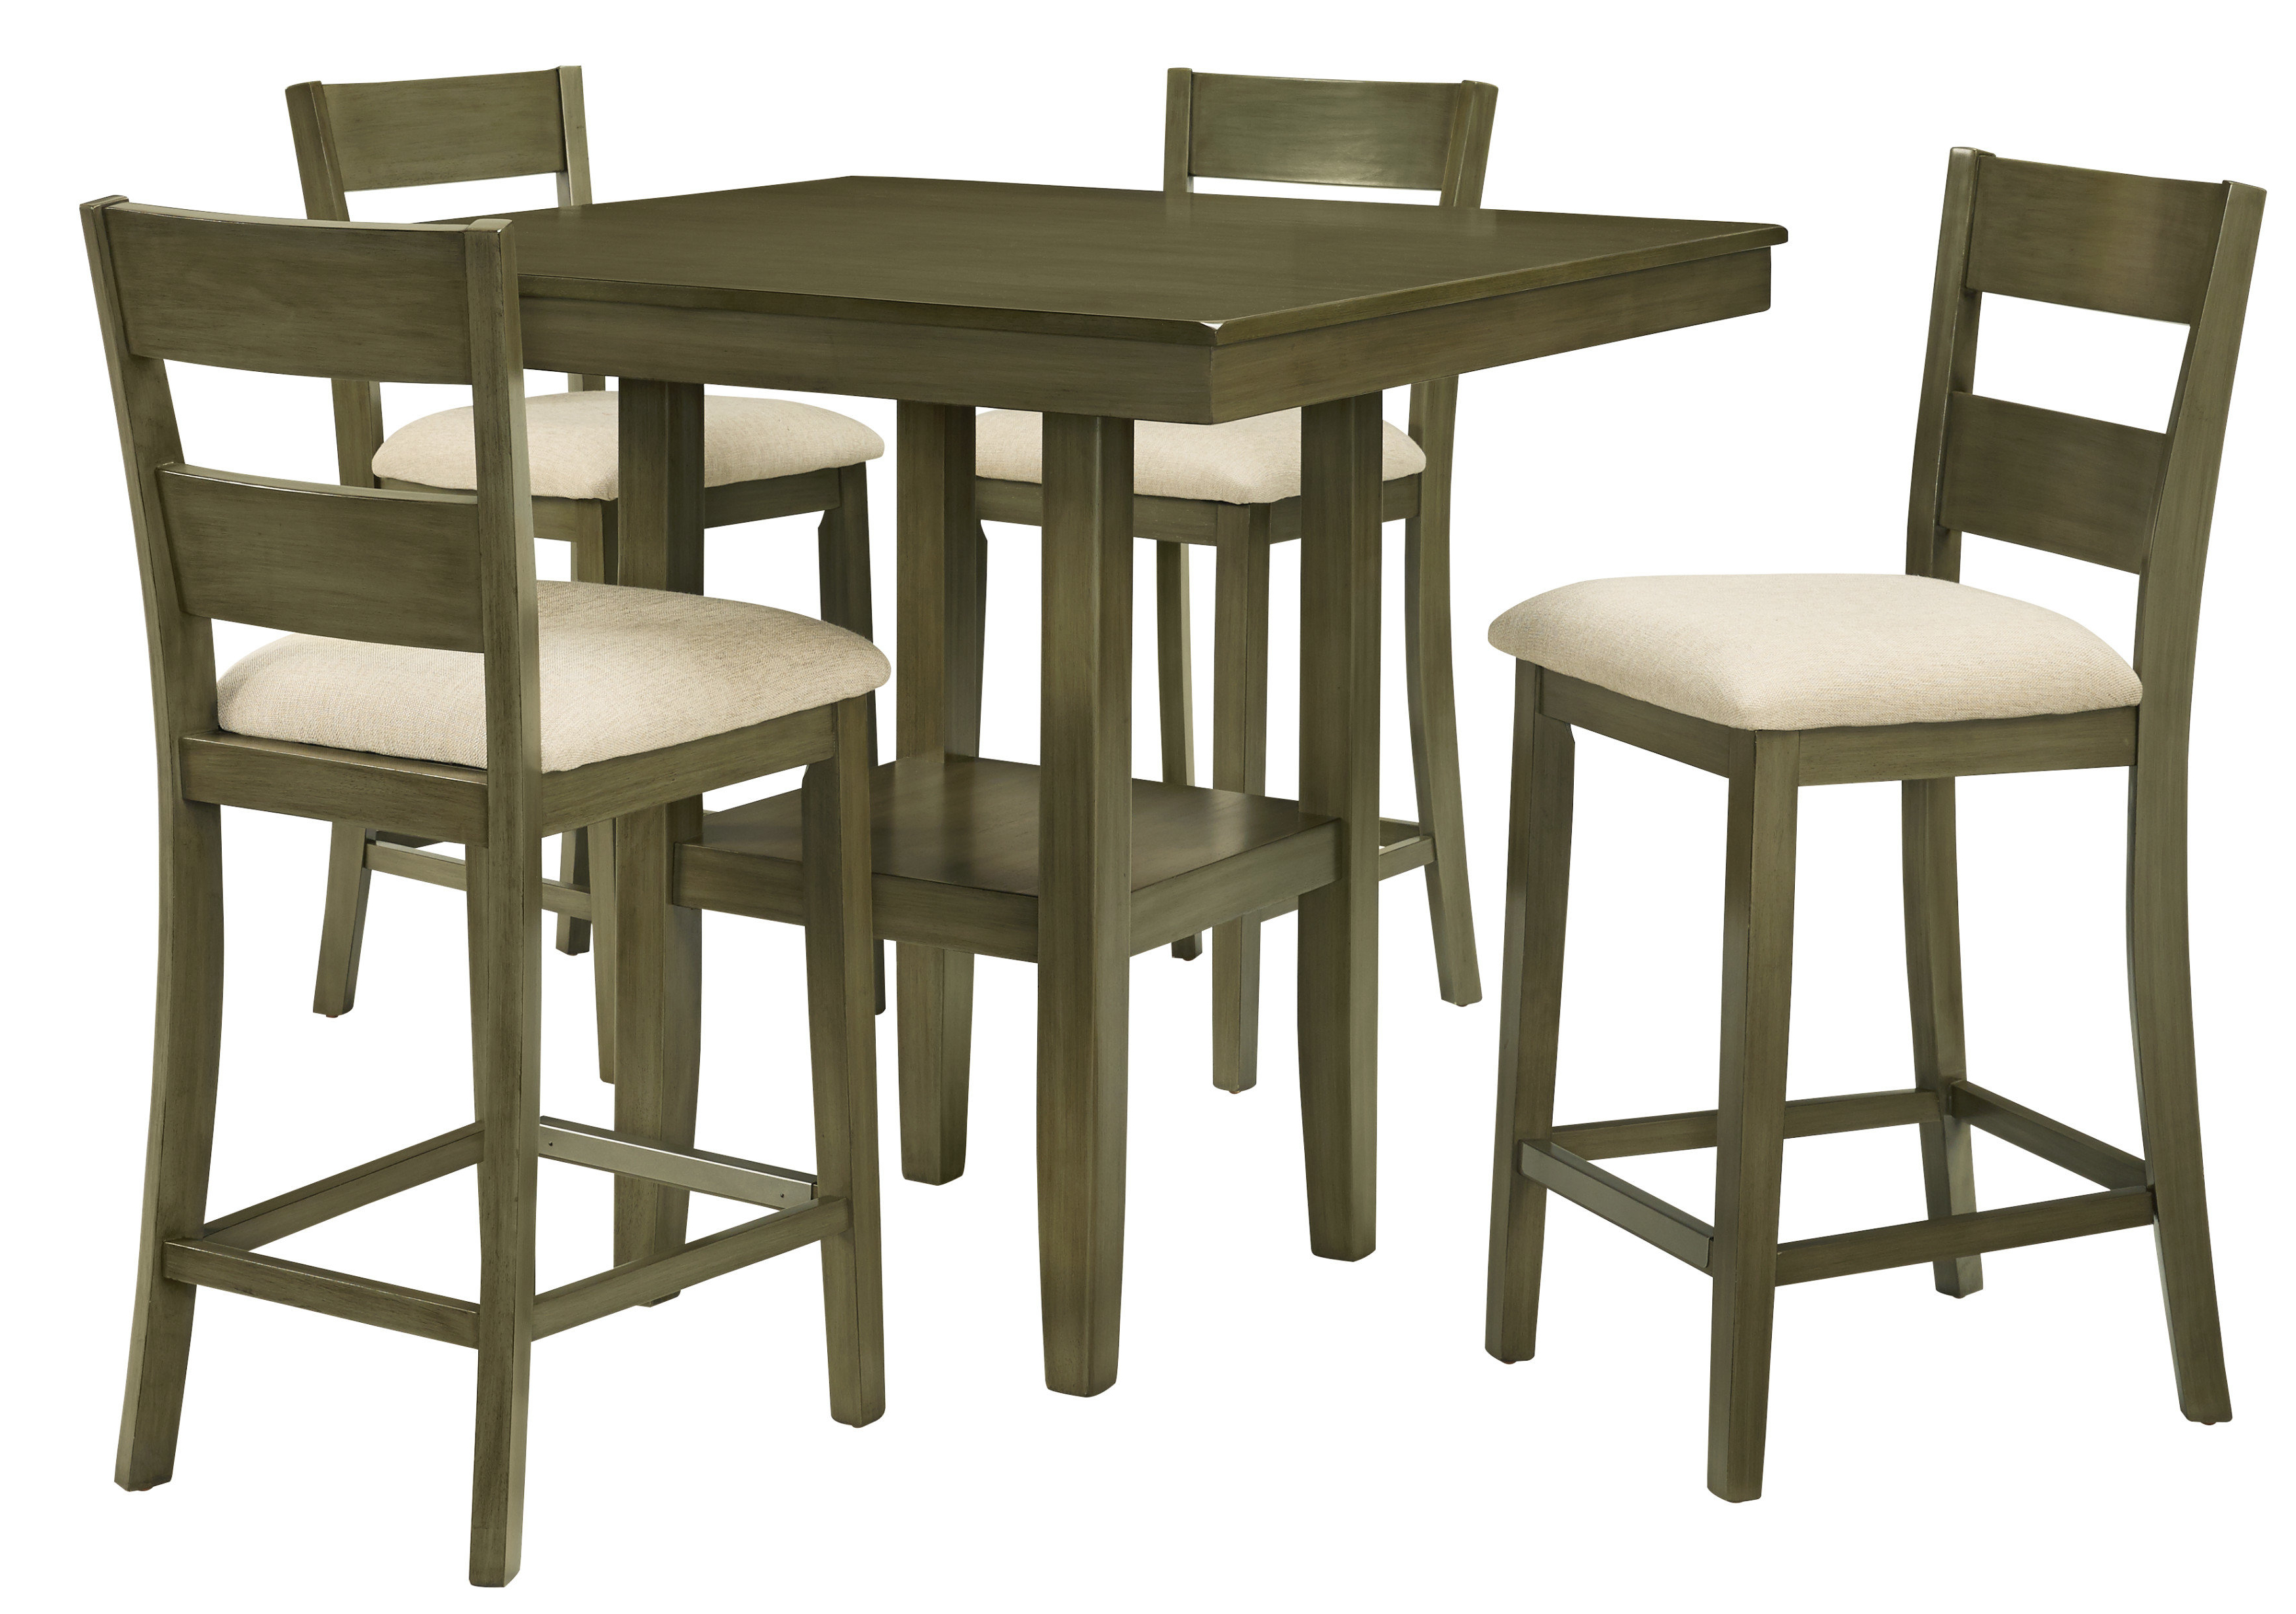 Joss & Main Within Popular Nutter 3 Piece Dining Sets (Gallery 18 of 25)